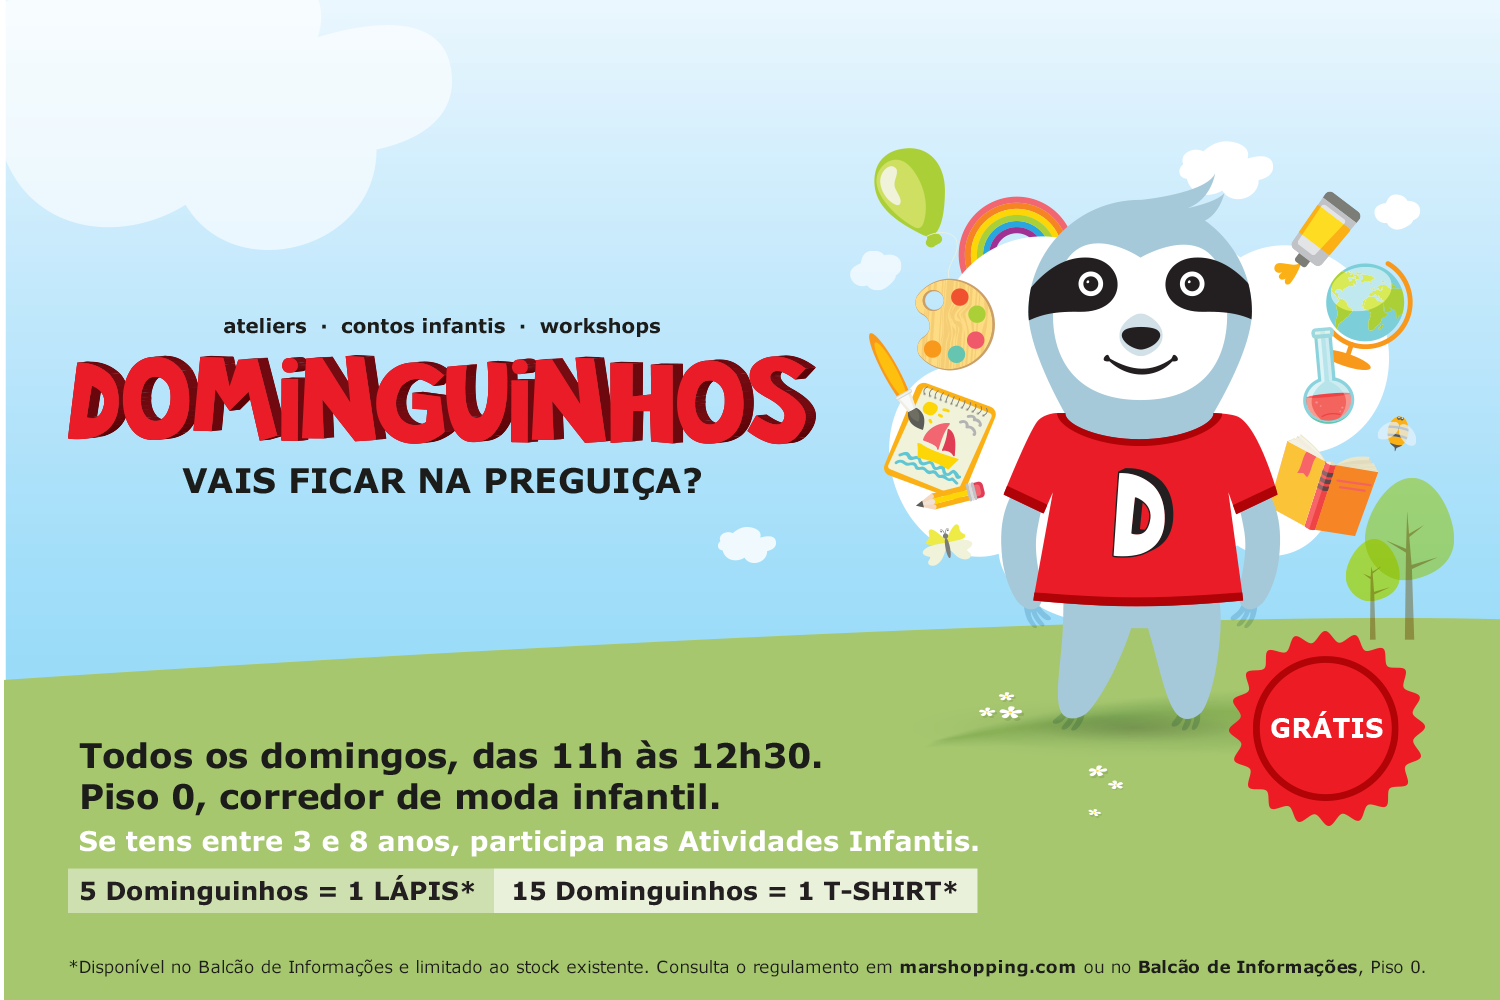 evento dominguinhos 2019